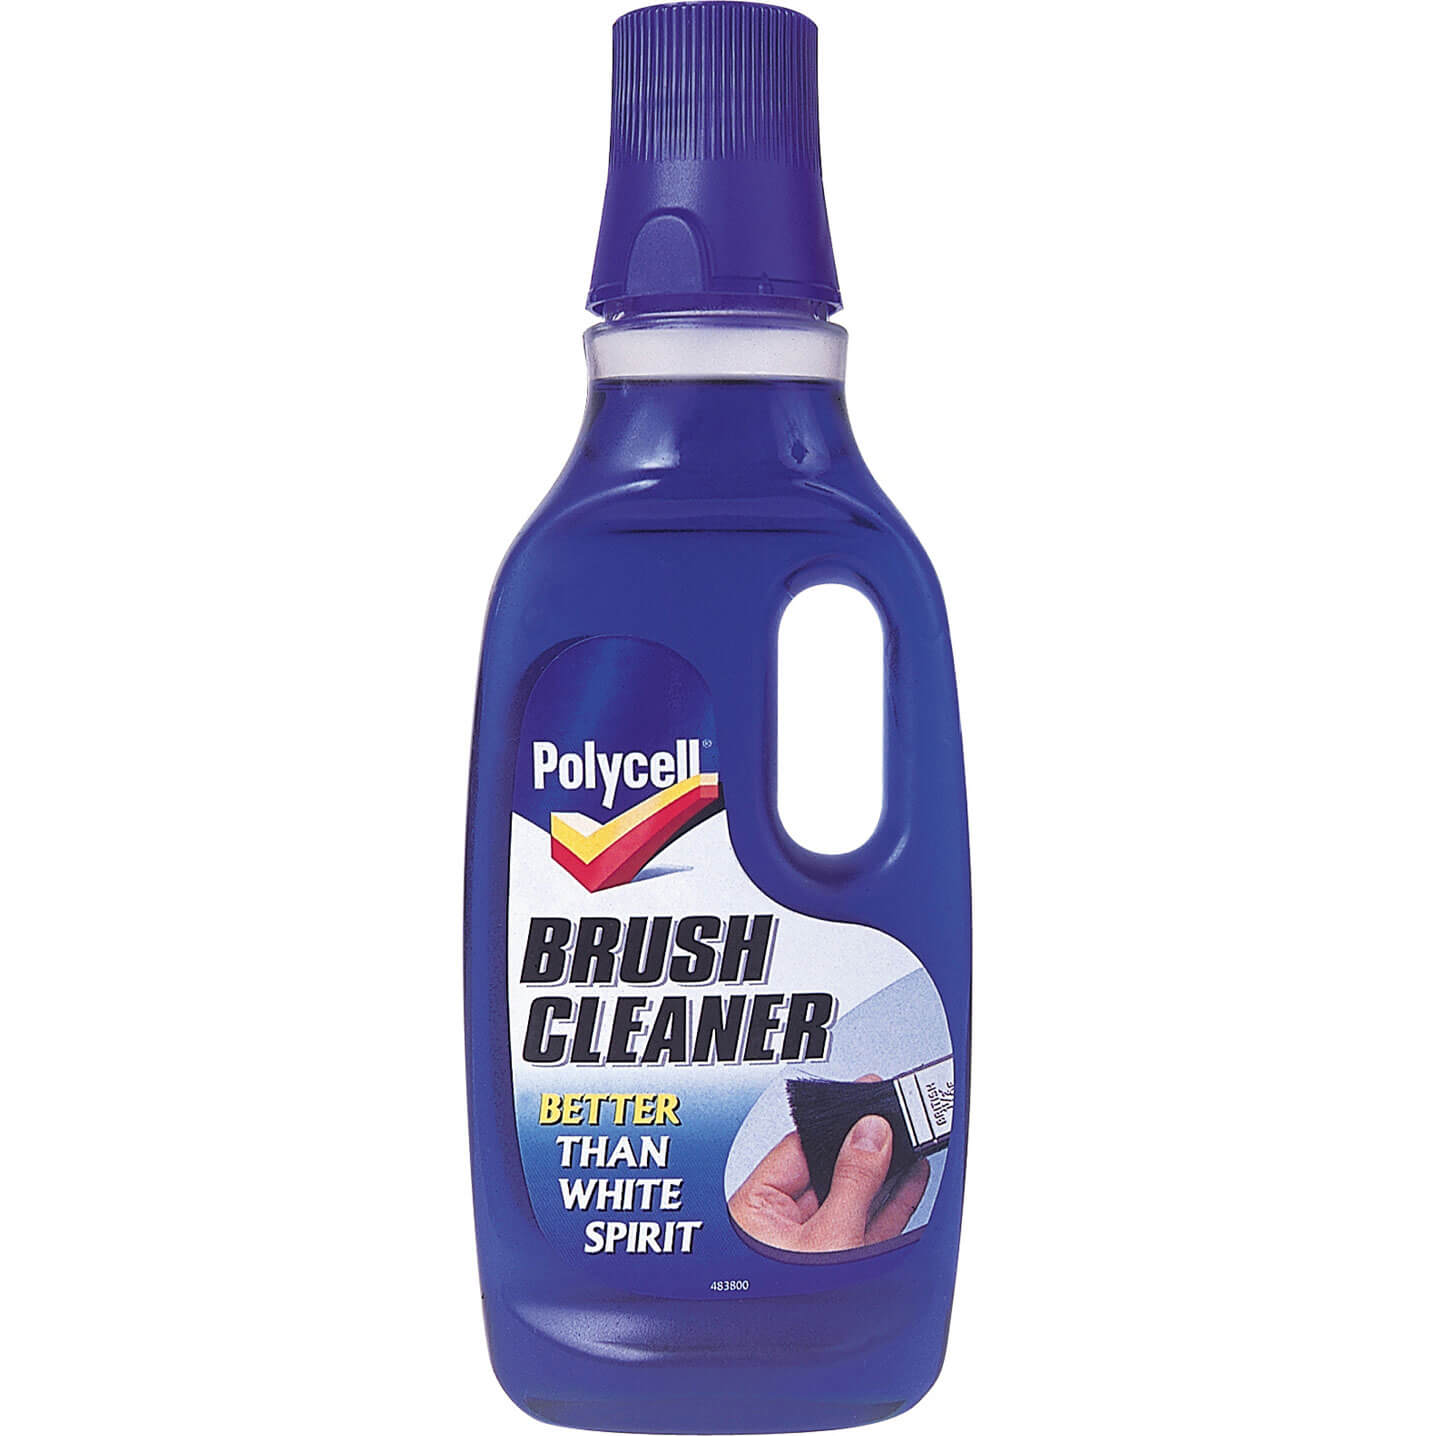 Image of Polycell Brush Cleaner 500ml